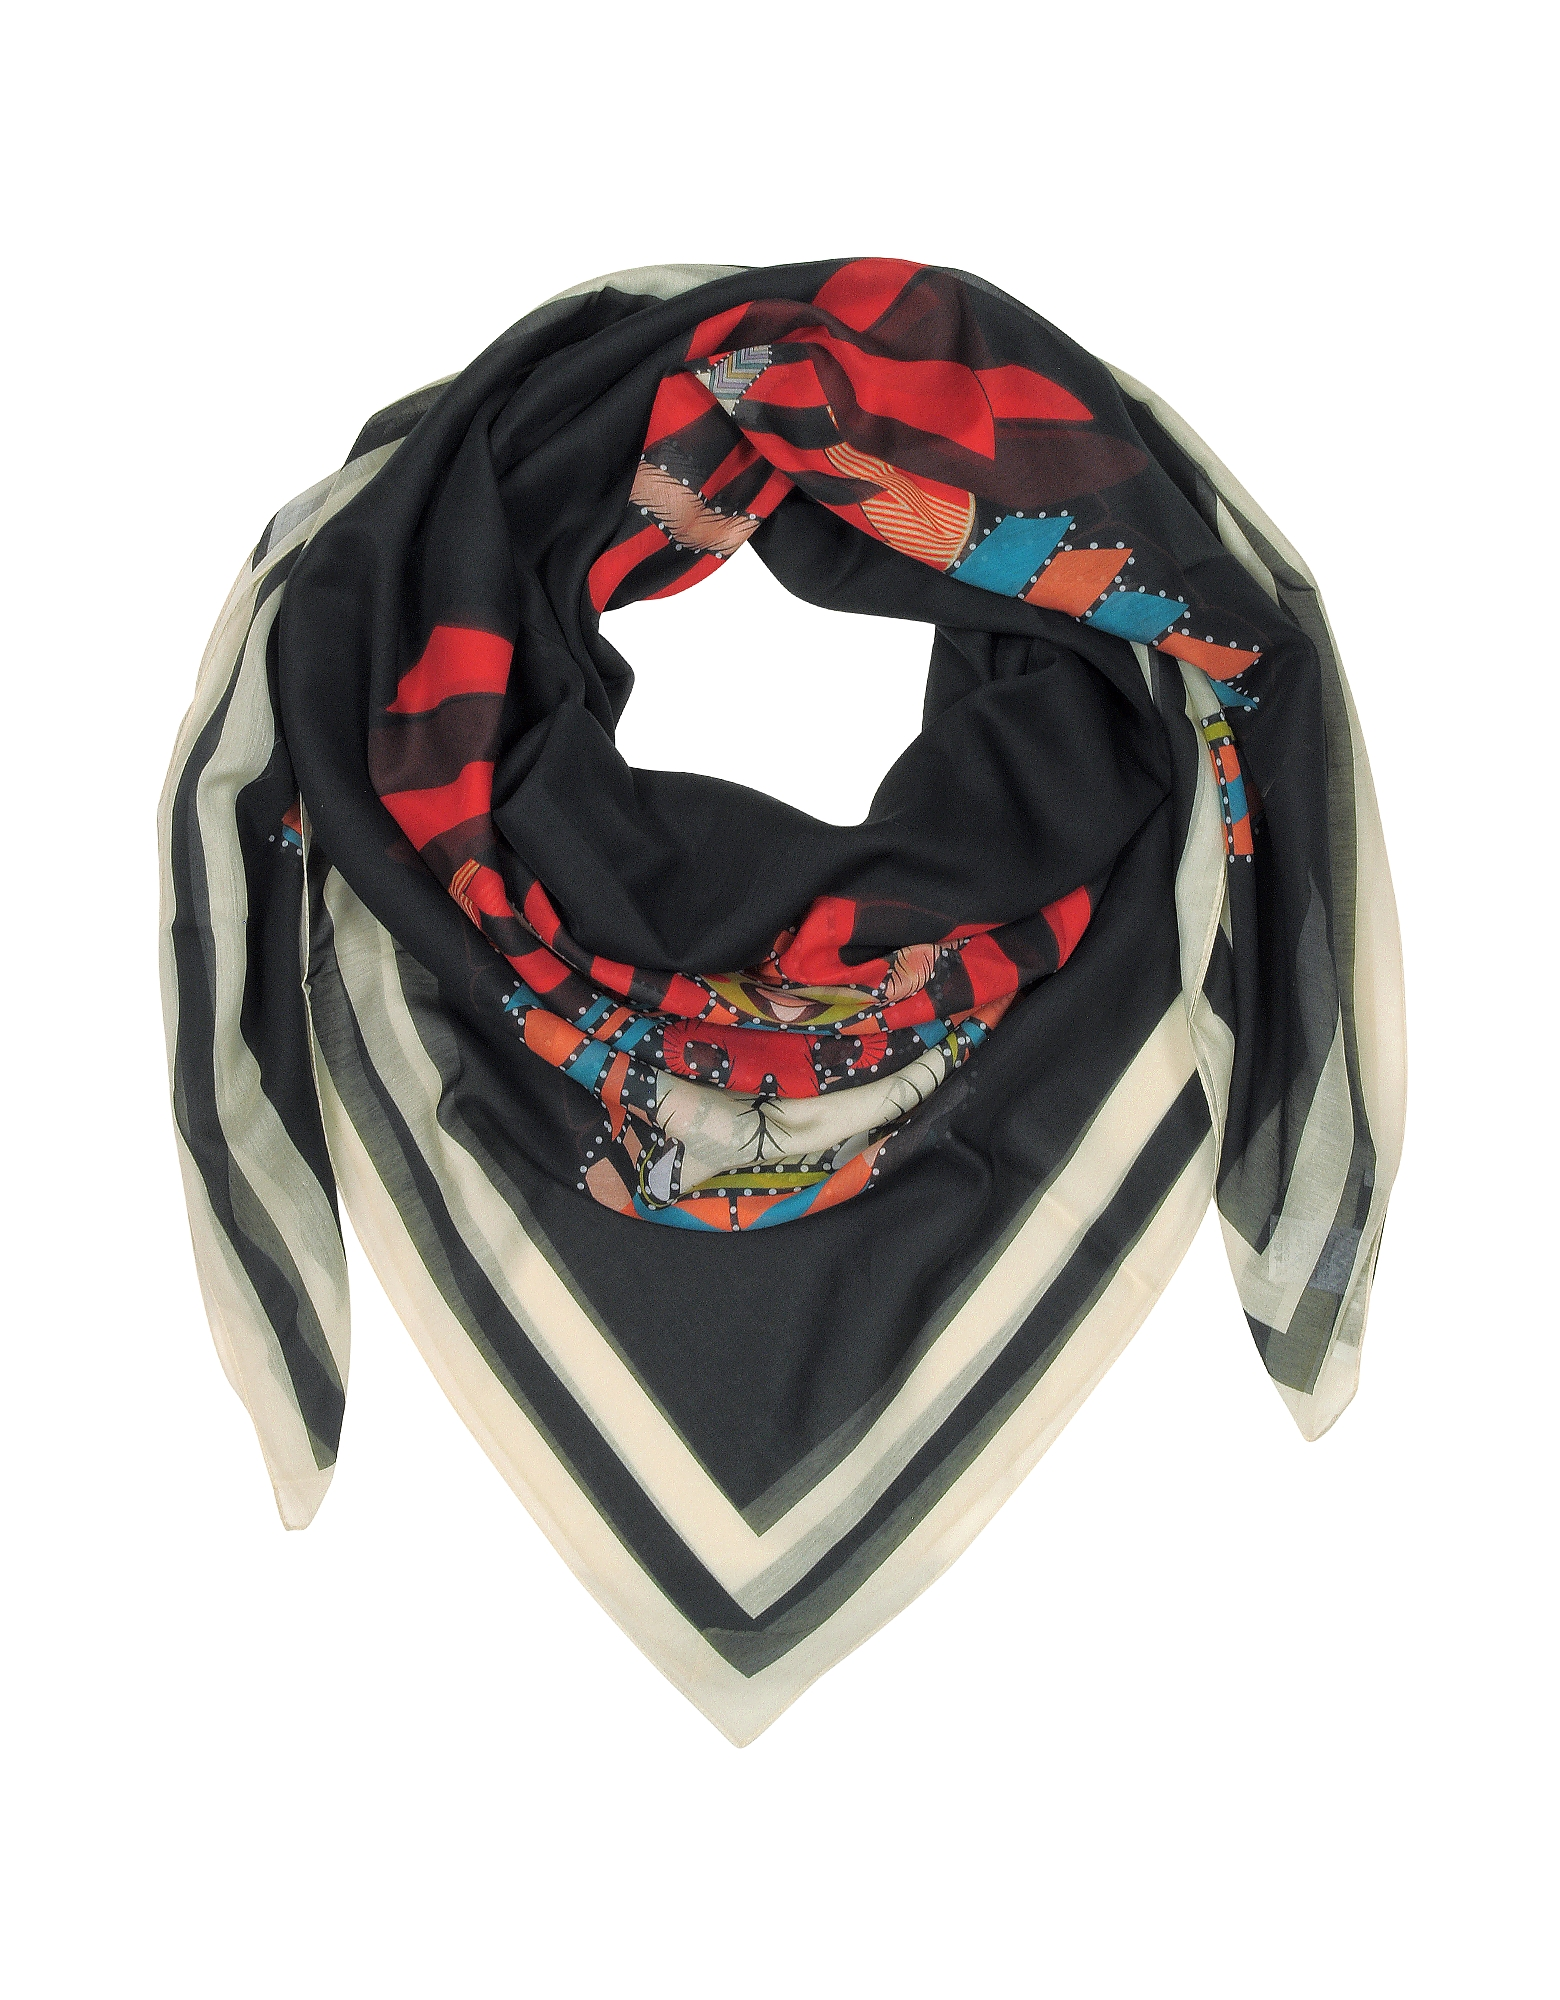 Givenchy Shawls & Wraps, Geometric Rottweiler Printed Cotton and Silk Stole